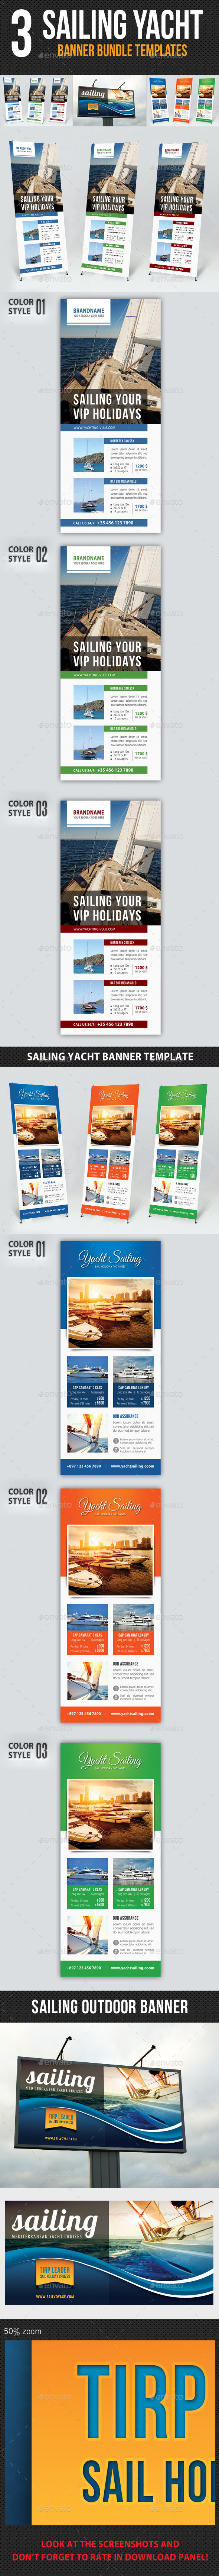 GraphicRiver 3 in 1 Sailing Yacht Banner Bundle 02 10350981